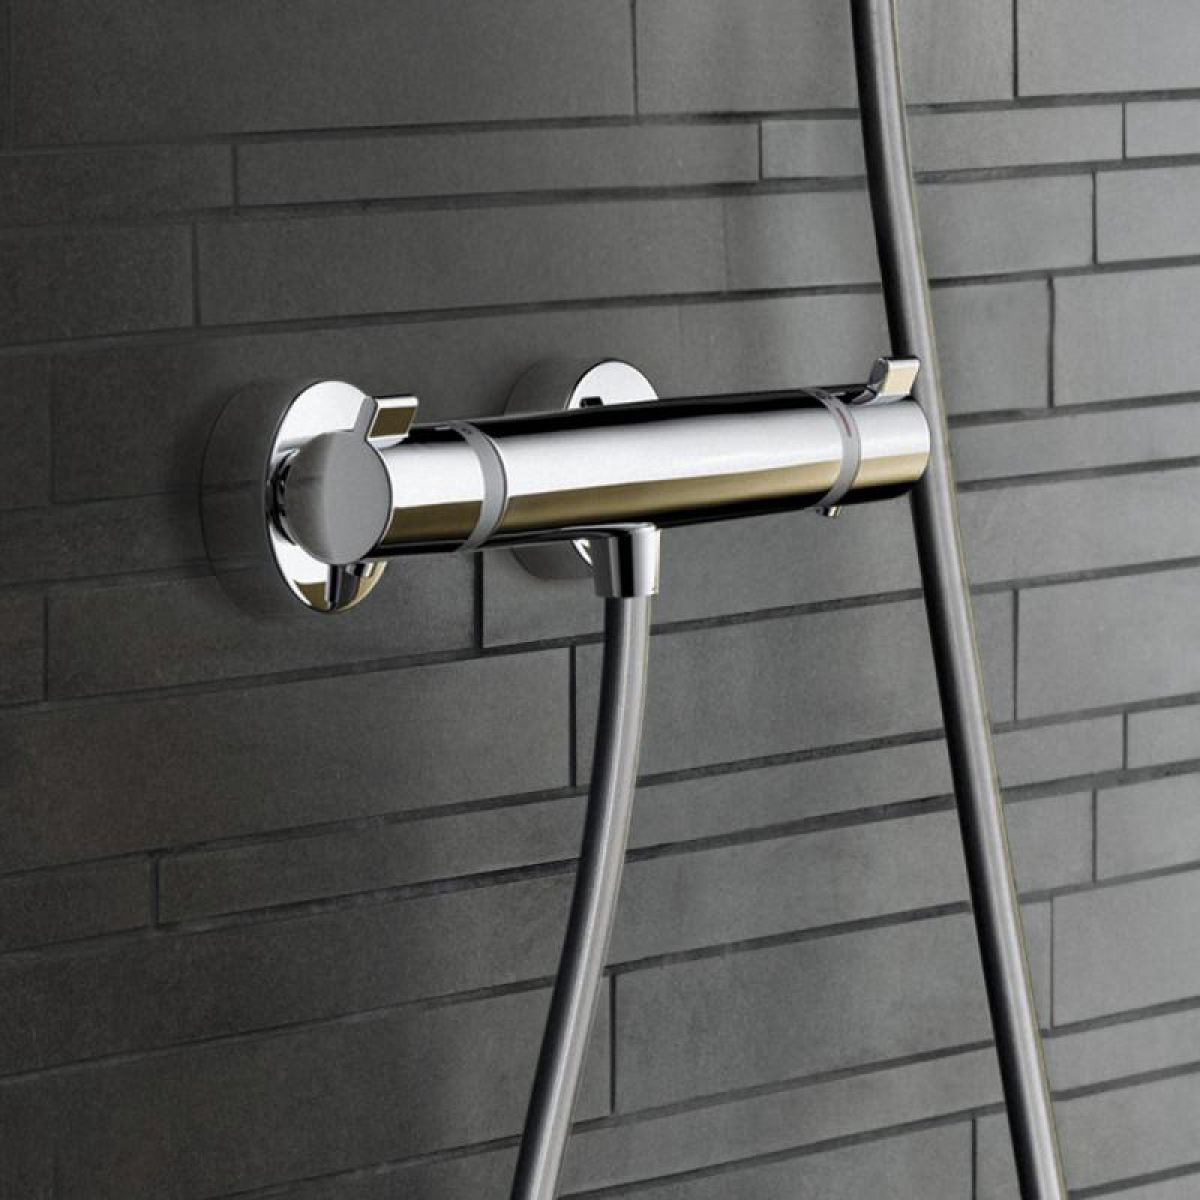 Hansgrohe Ecostat Comfort : hansgrohe ecostat comfort exposed shower mixer uk bathrooms ~ Yasmunasinghe.com Haus und Dekorationen